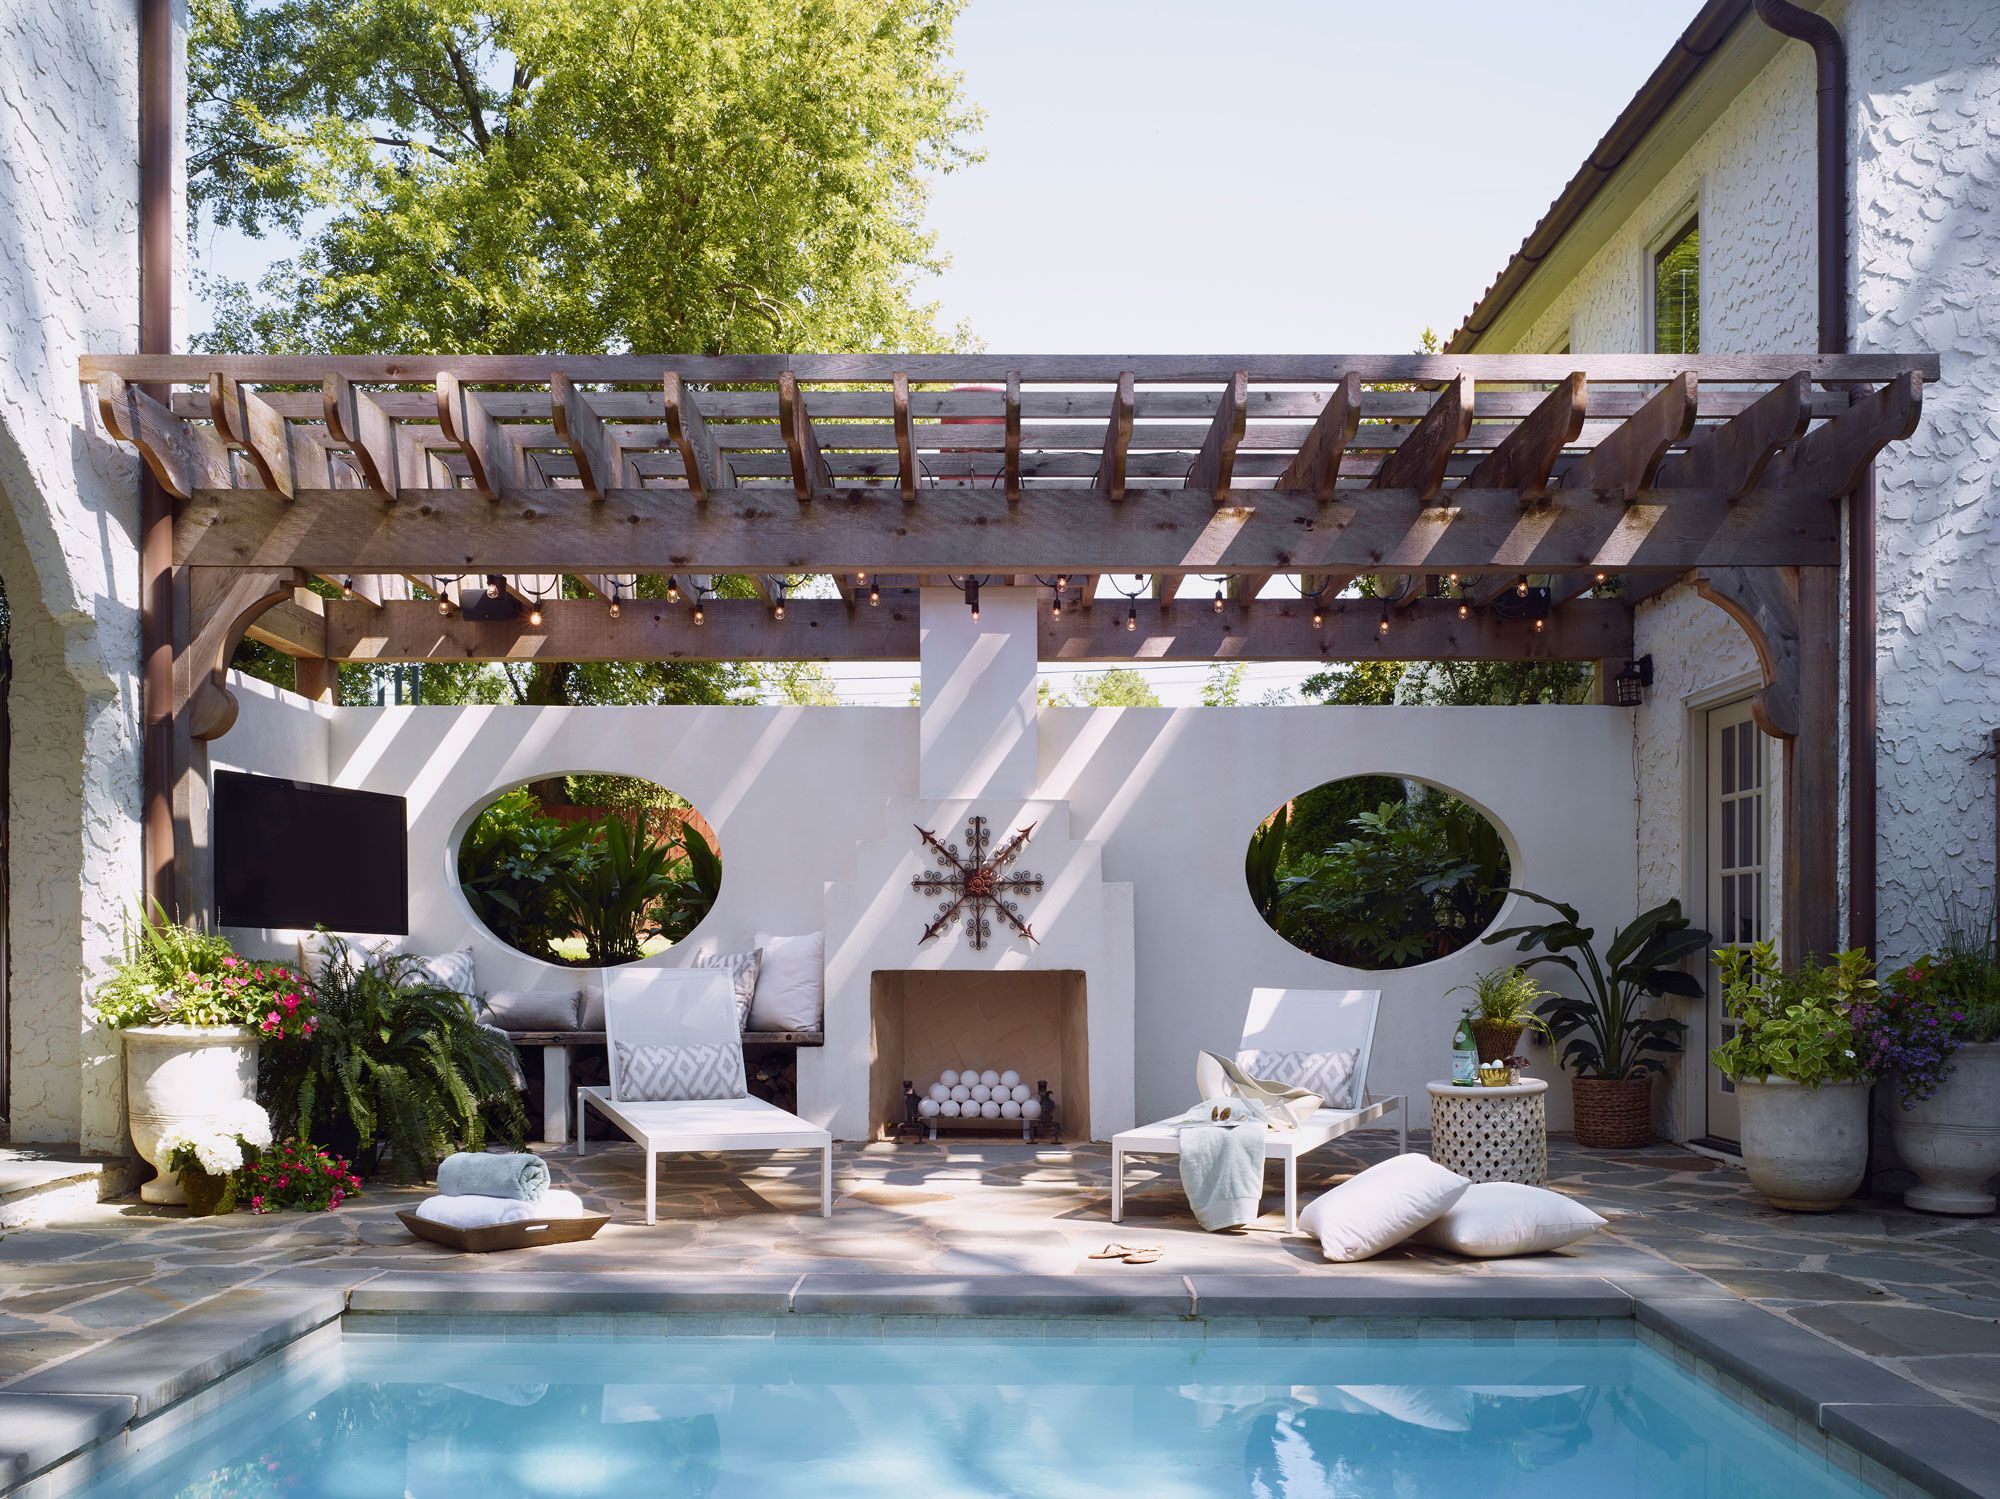 Pool Aus Paletten Viereckig Spanish Colonial Pool Terrace Pool Deck Outdoor